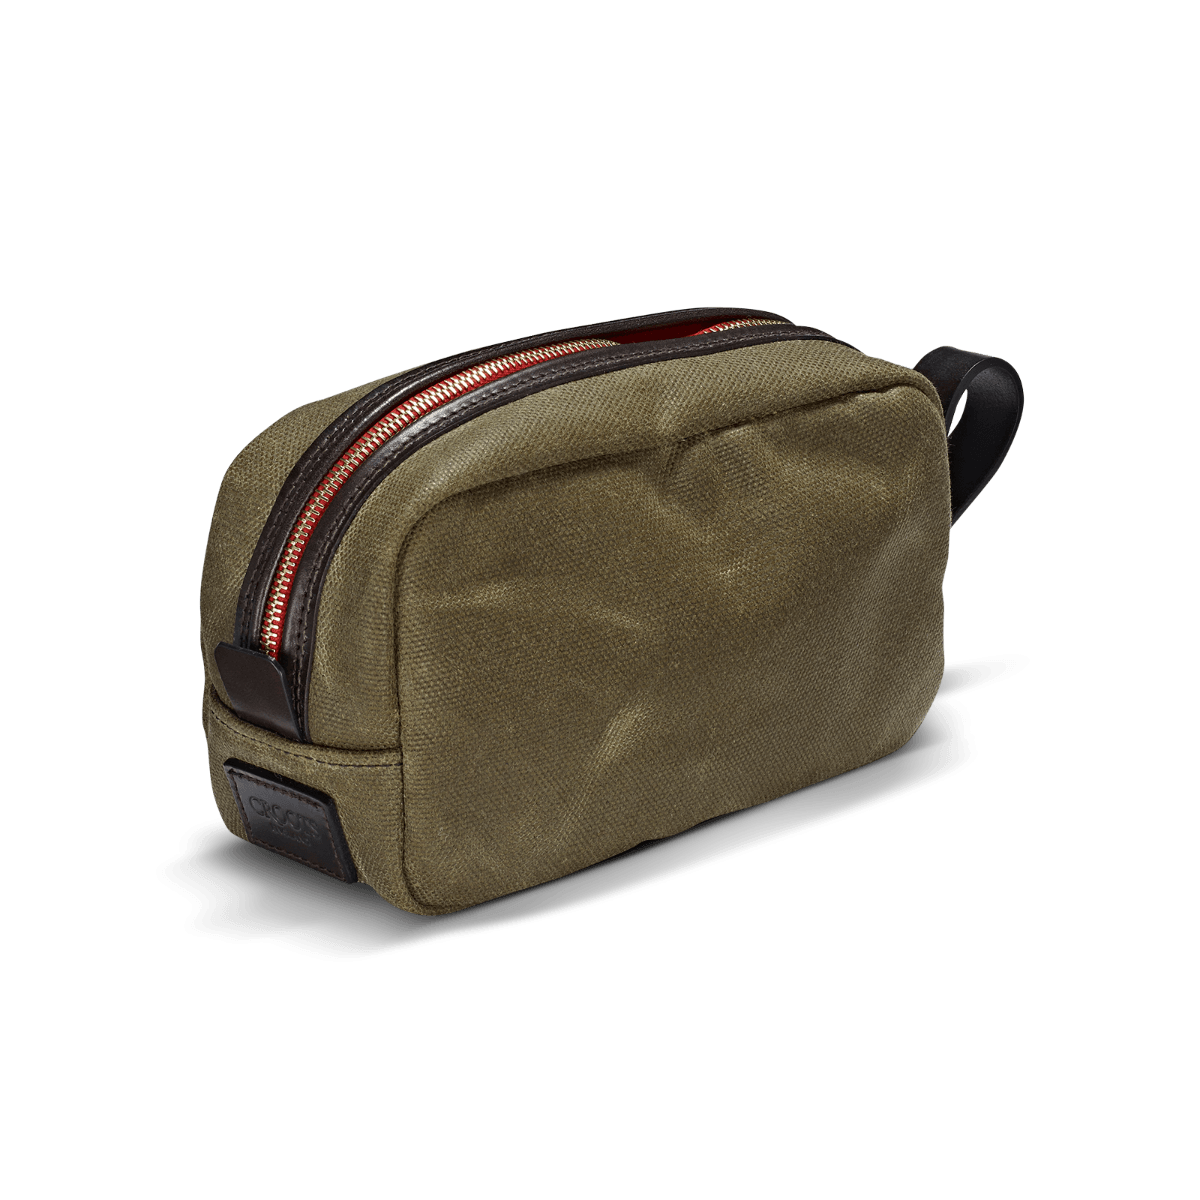 CROOTS Vintage Wash Bag, waxed kanvas, oliven